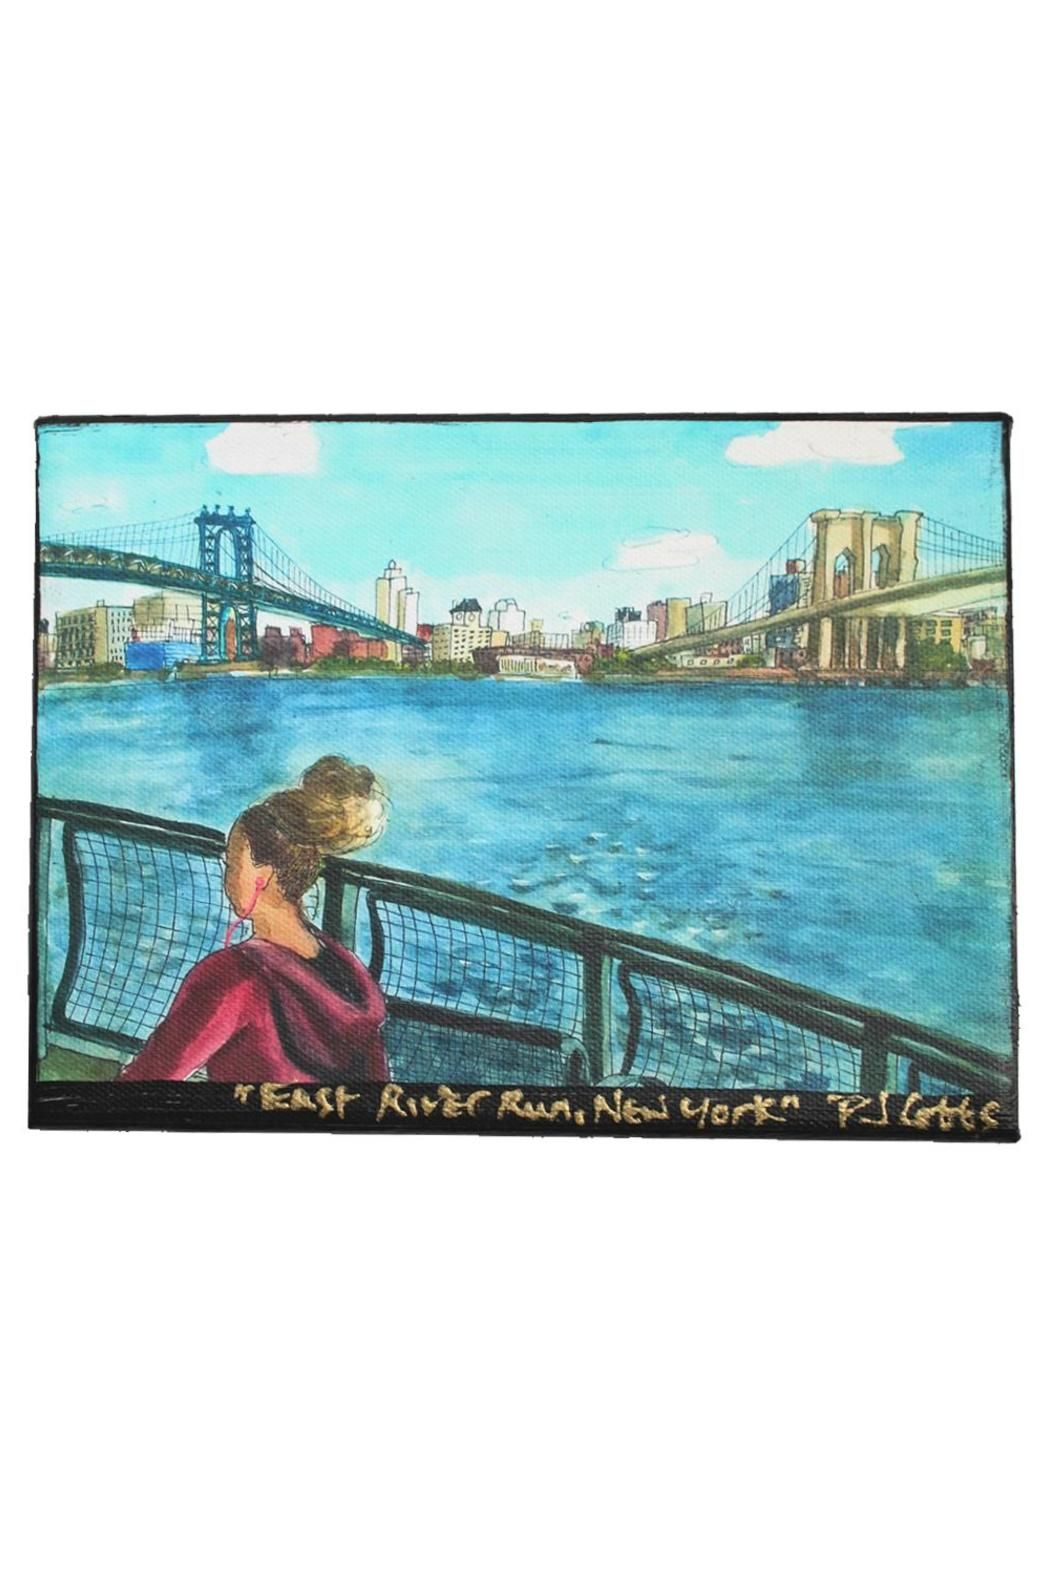 """Brooklyn Bridge Canvas - """"East River Run"""" is by artist PJ Cobbs """"New York Neighborhoods"""" series of silk paintings. This painting shows a view of Brooklyn and the Manhattan Bridge and Brooklyn Bridge from the perspective of a runner on the East River in Manhattan. The image is printed on inkjet canvas using archival inks, trimmed with black paint and hand-signed by the artist in gold. Ready to hang."""